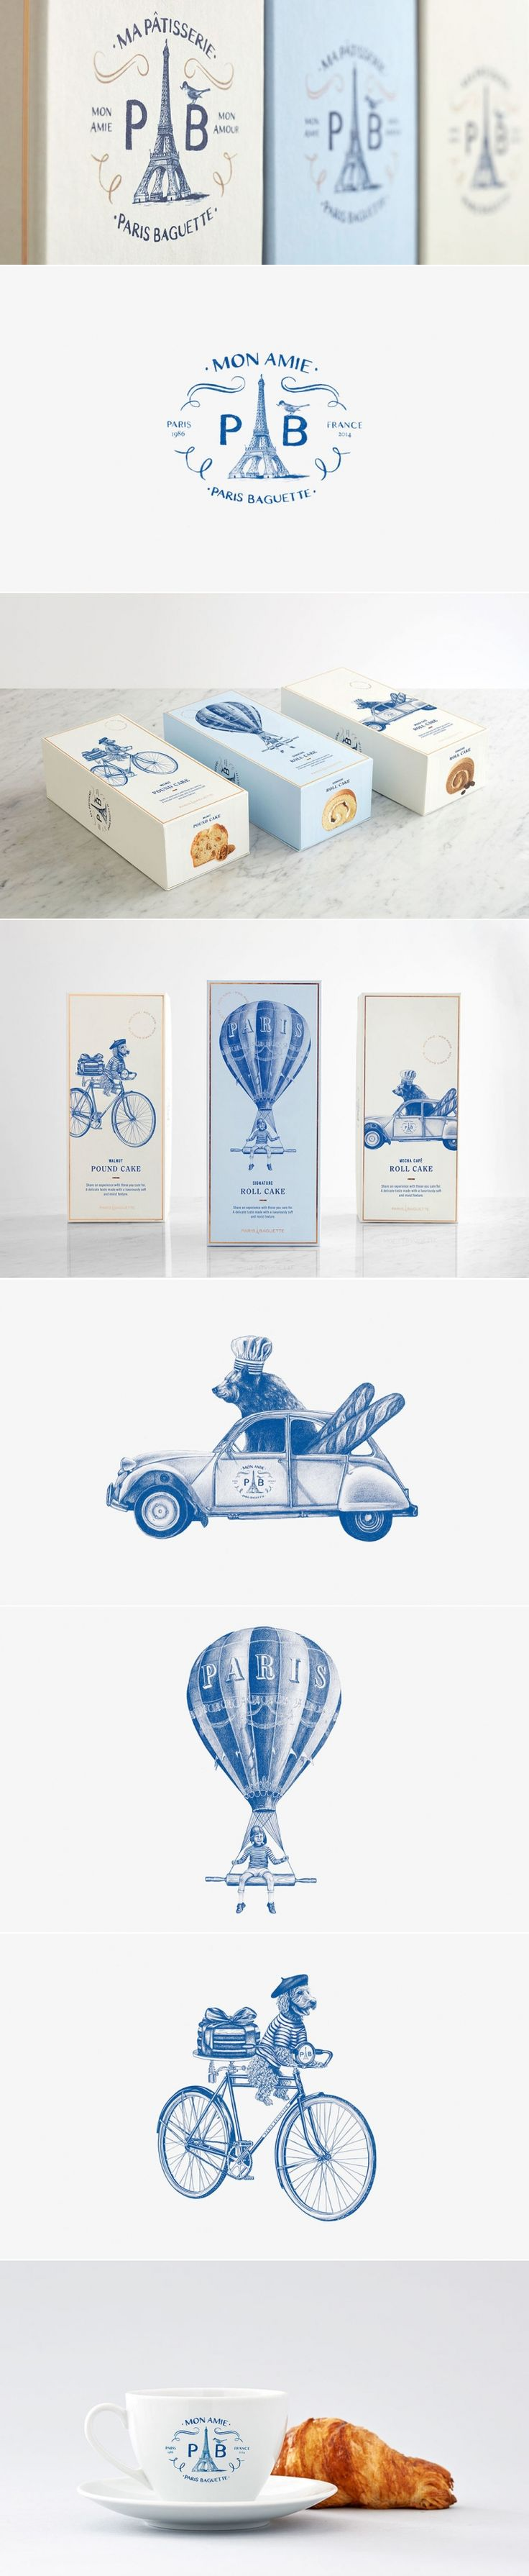 Paris Baguette — The Dieline | Packaging & Branding Design & Innovation News